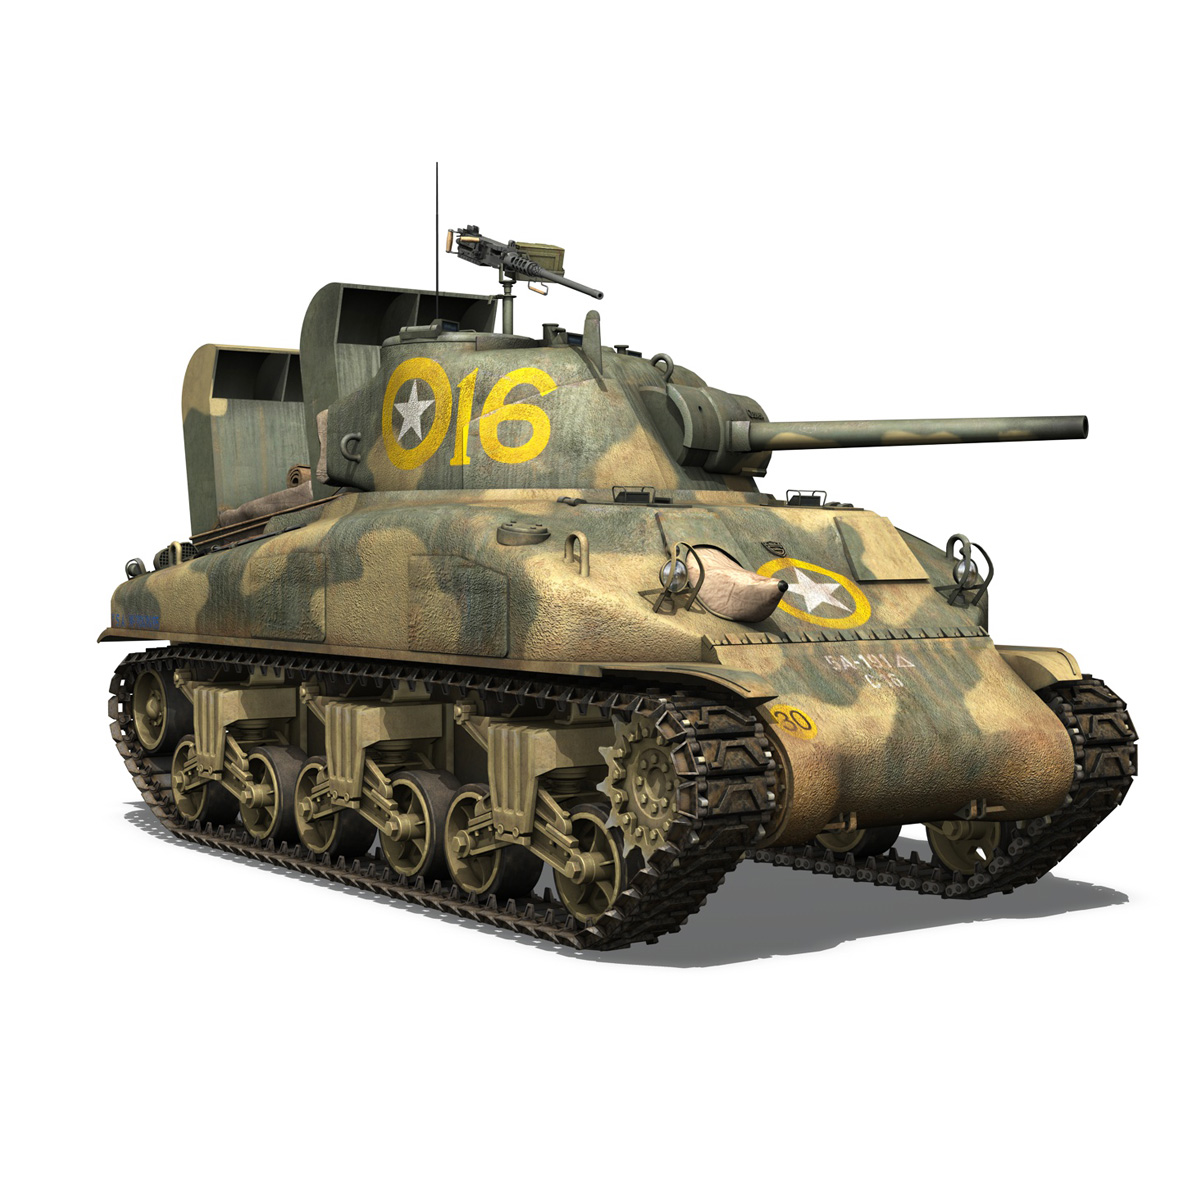 m4a1 sherman – 16 3d model 3ds fbx c4d lwo obj 273057